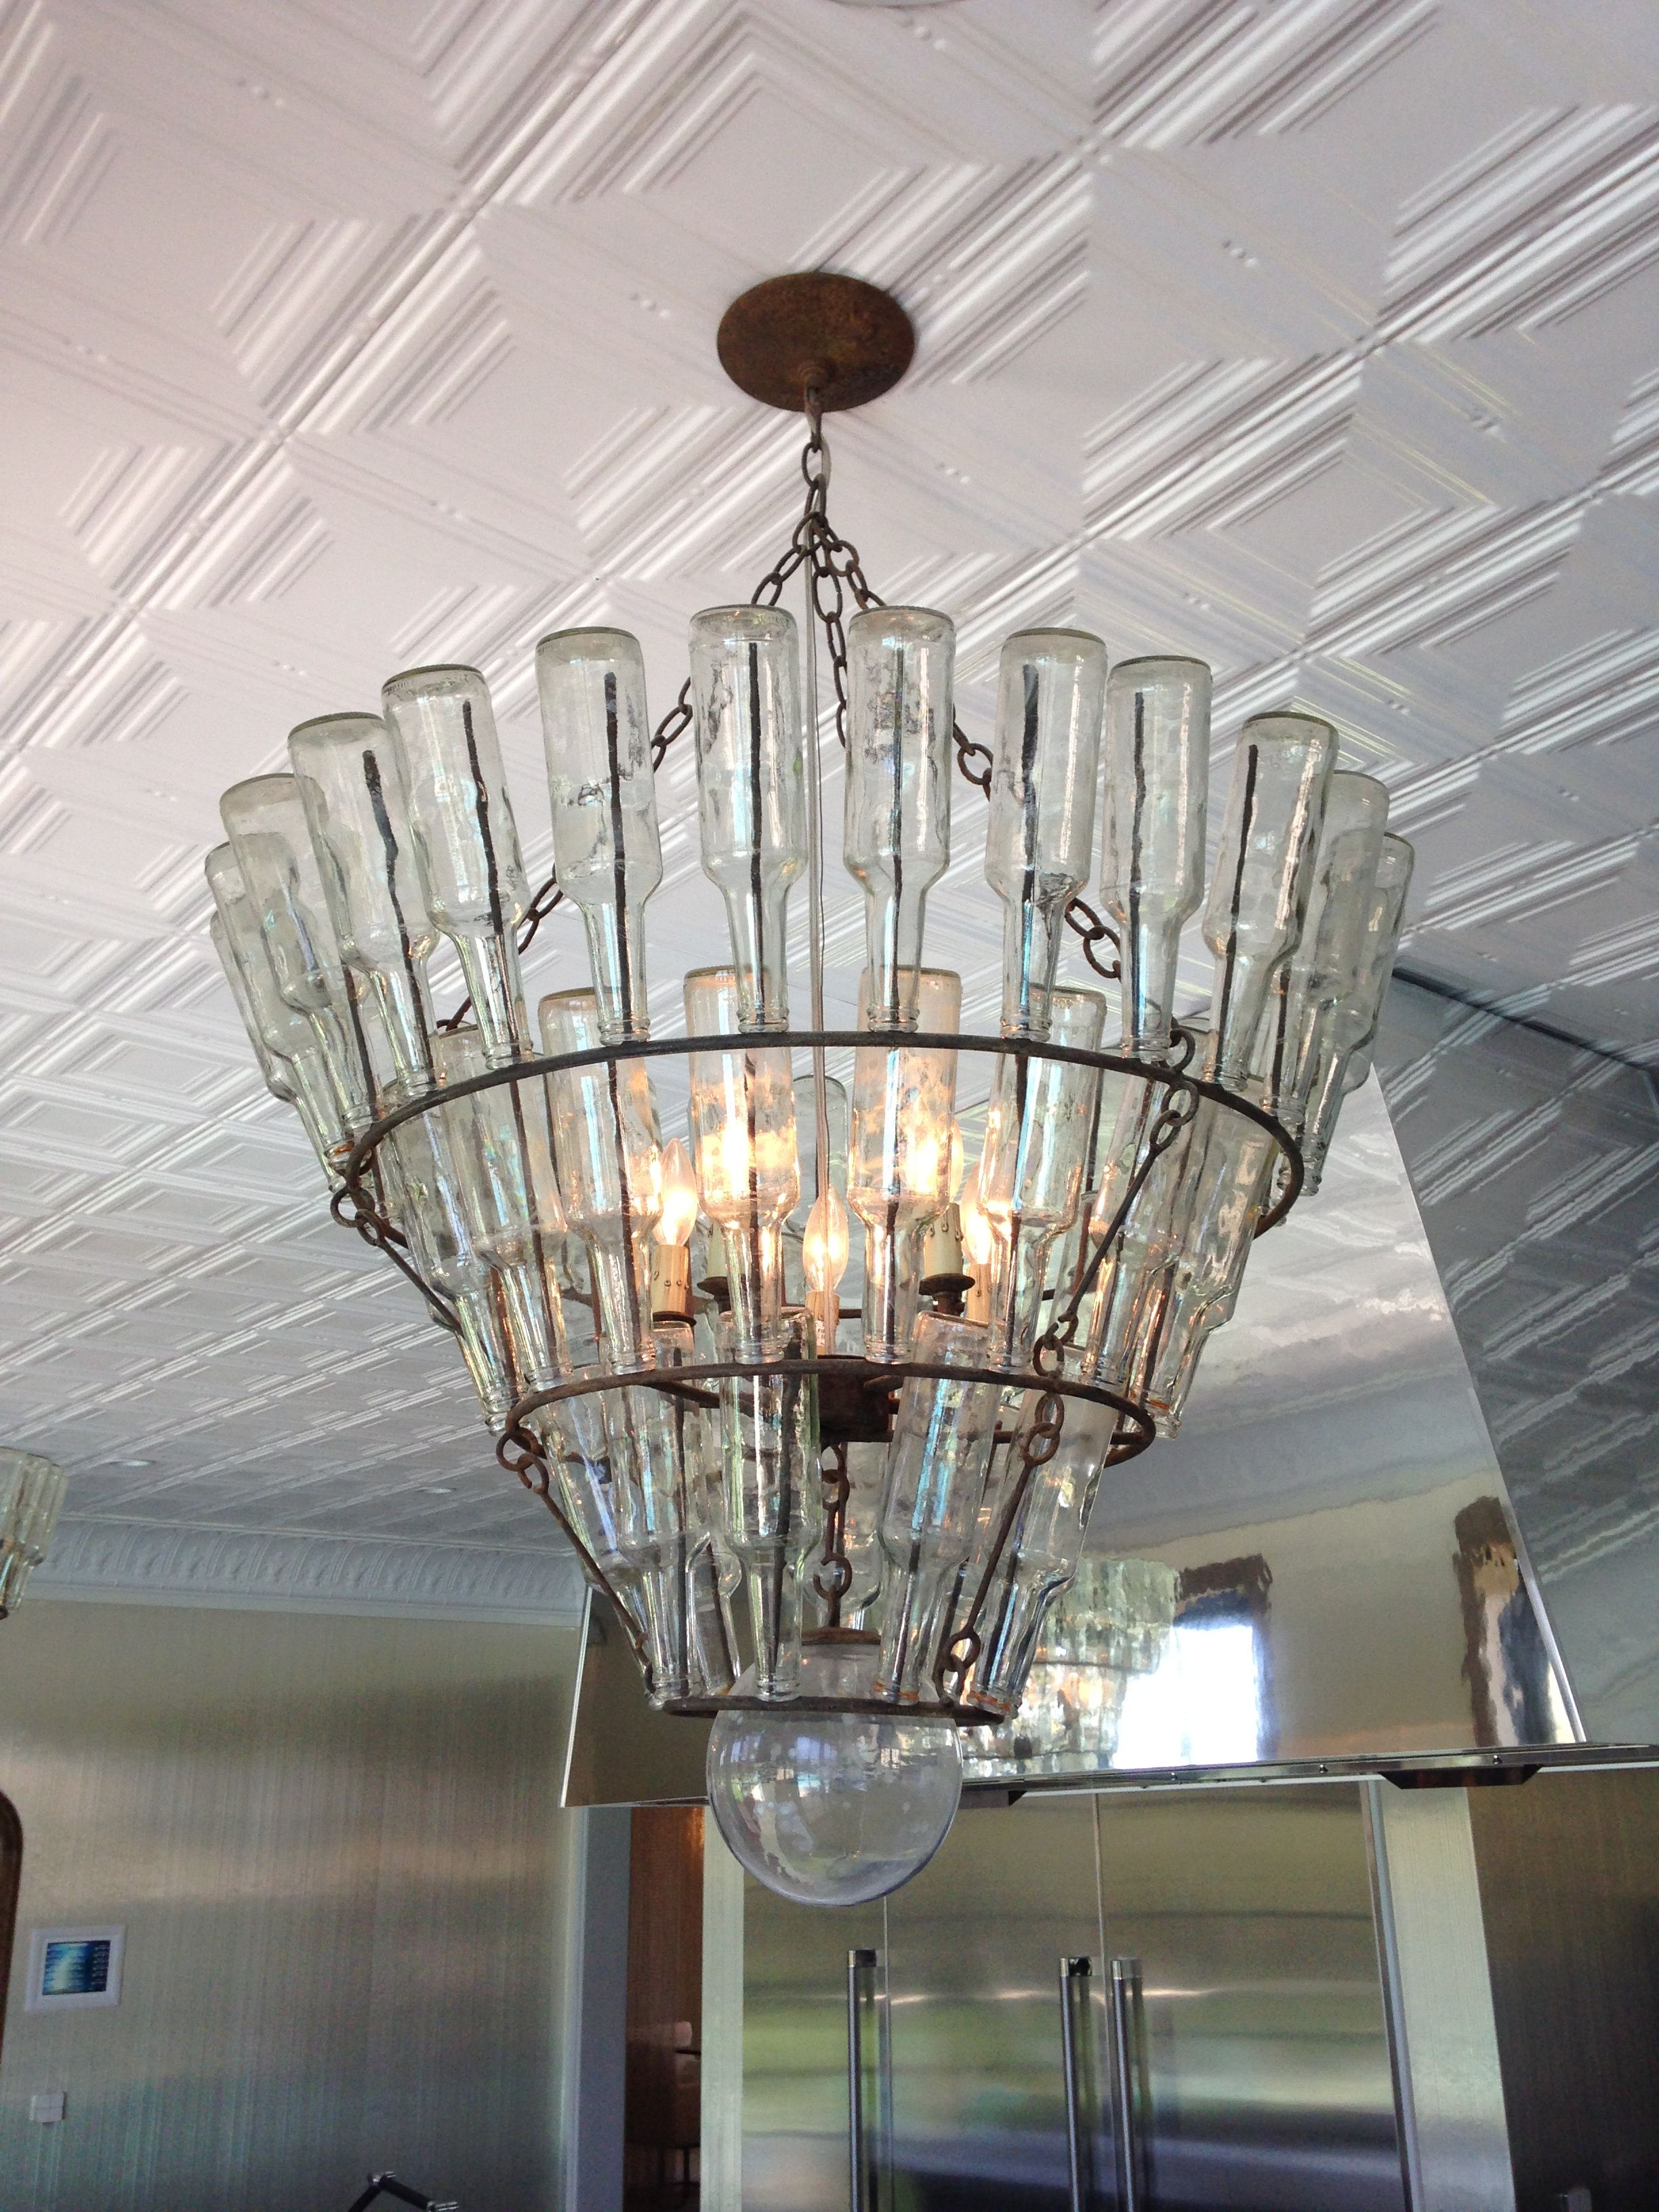 glam mosaic chandelier countertops also in cabinets backsplash size over ideas of stairs island kitchen breakfast inspiration and with louvered terracotta bar farmhouse shaker white full lovely onyx stove